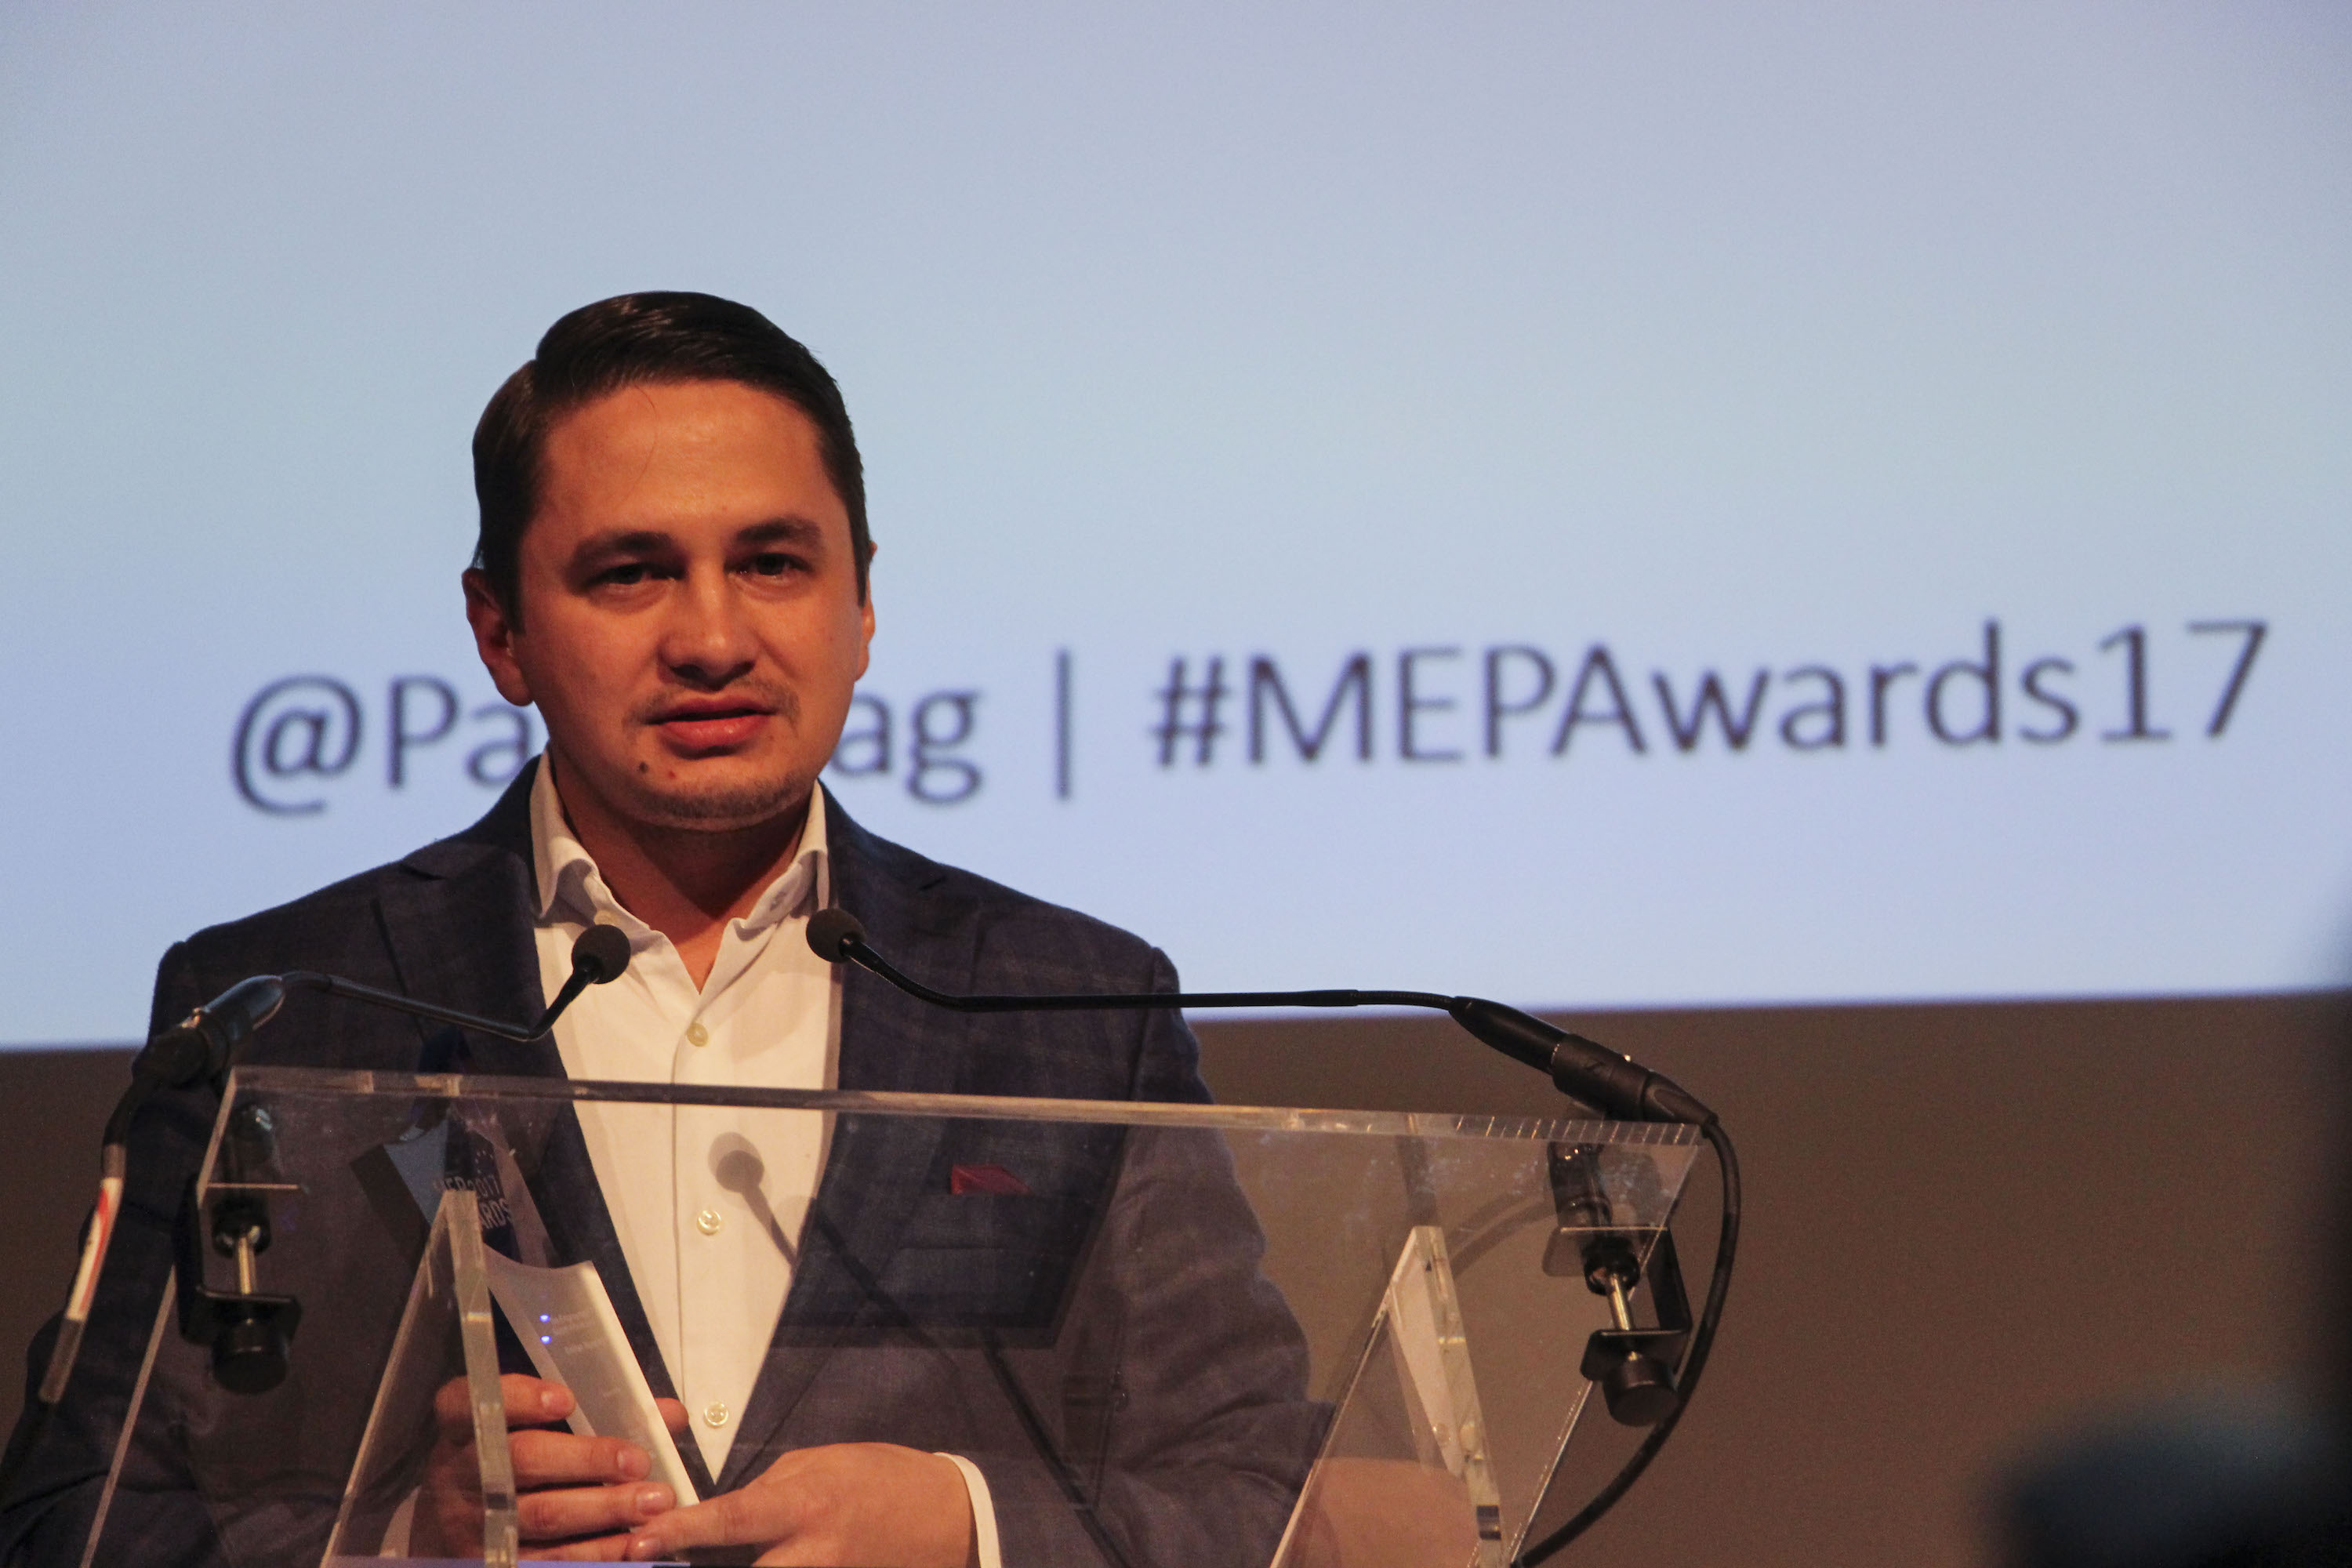 mep-awards-17_15